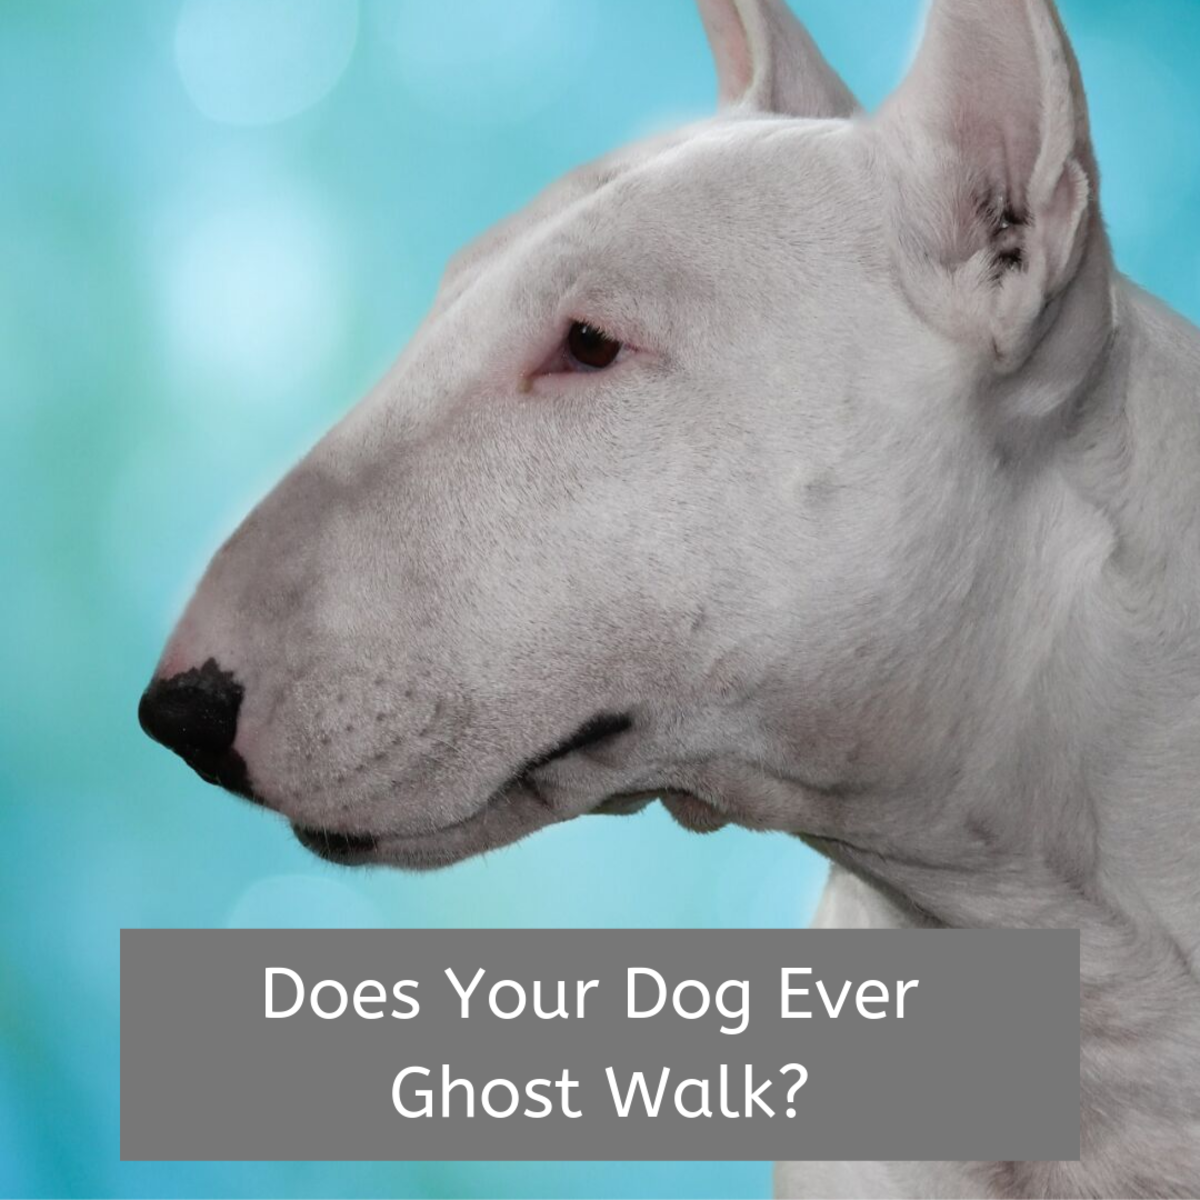 Does your dog ever go into trances and seem to walk in slow motion?